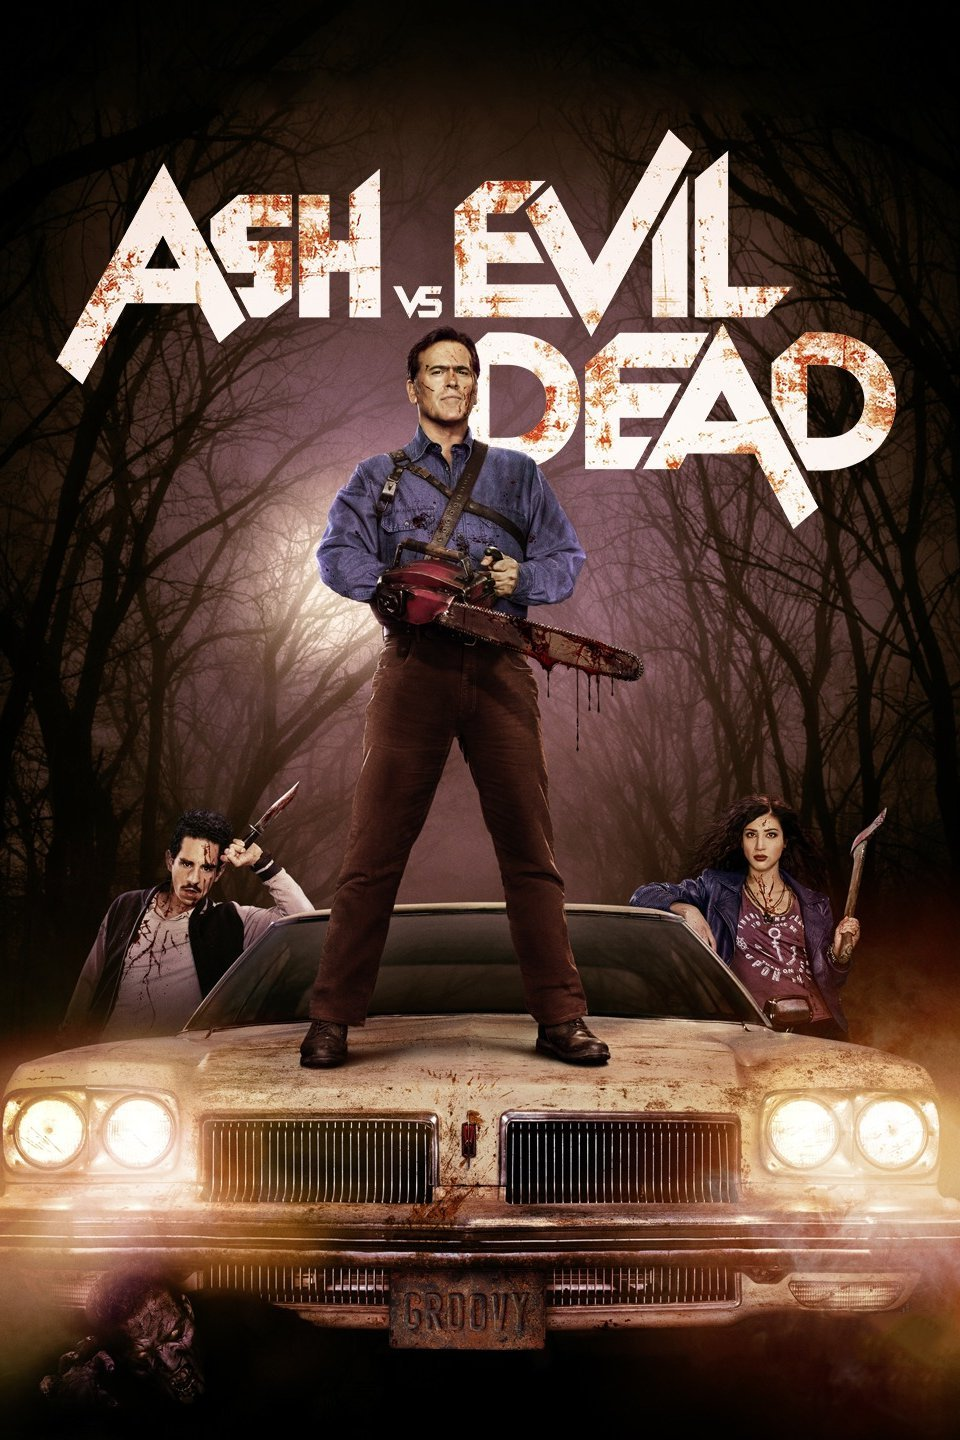 Ash Vs Evil Dead on DISH